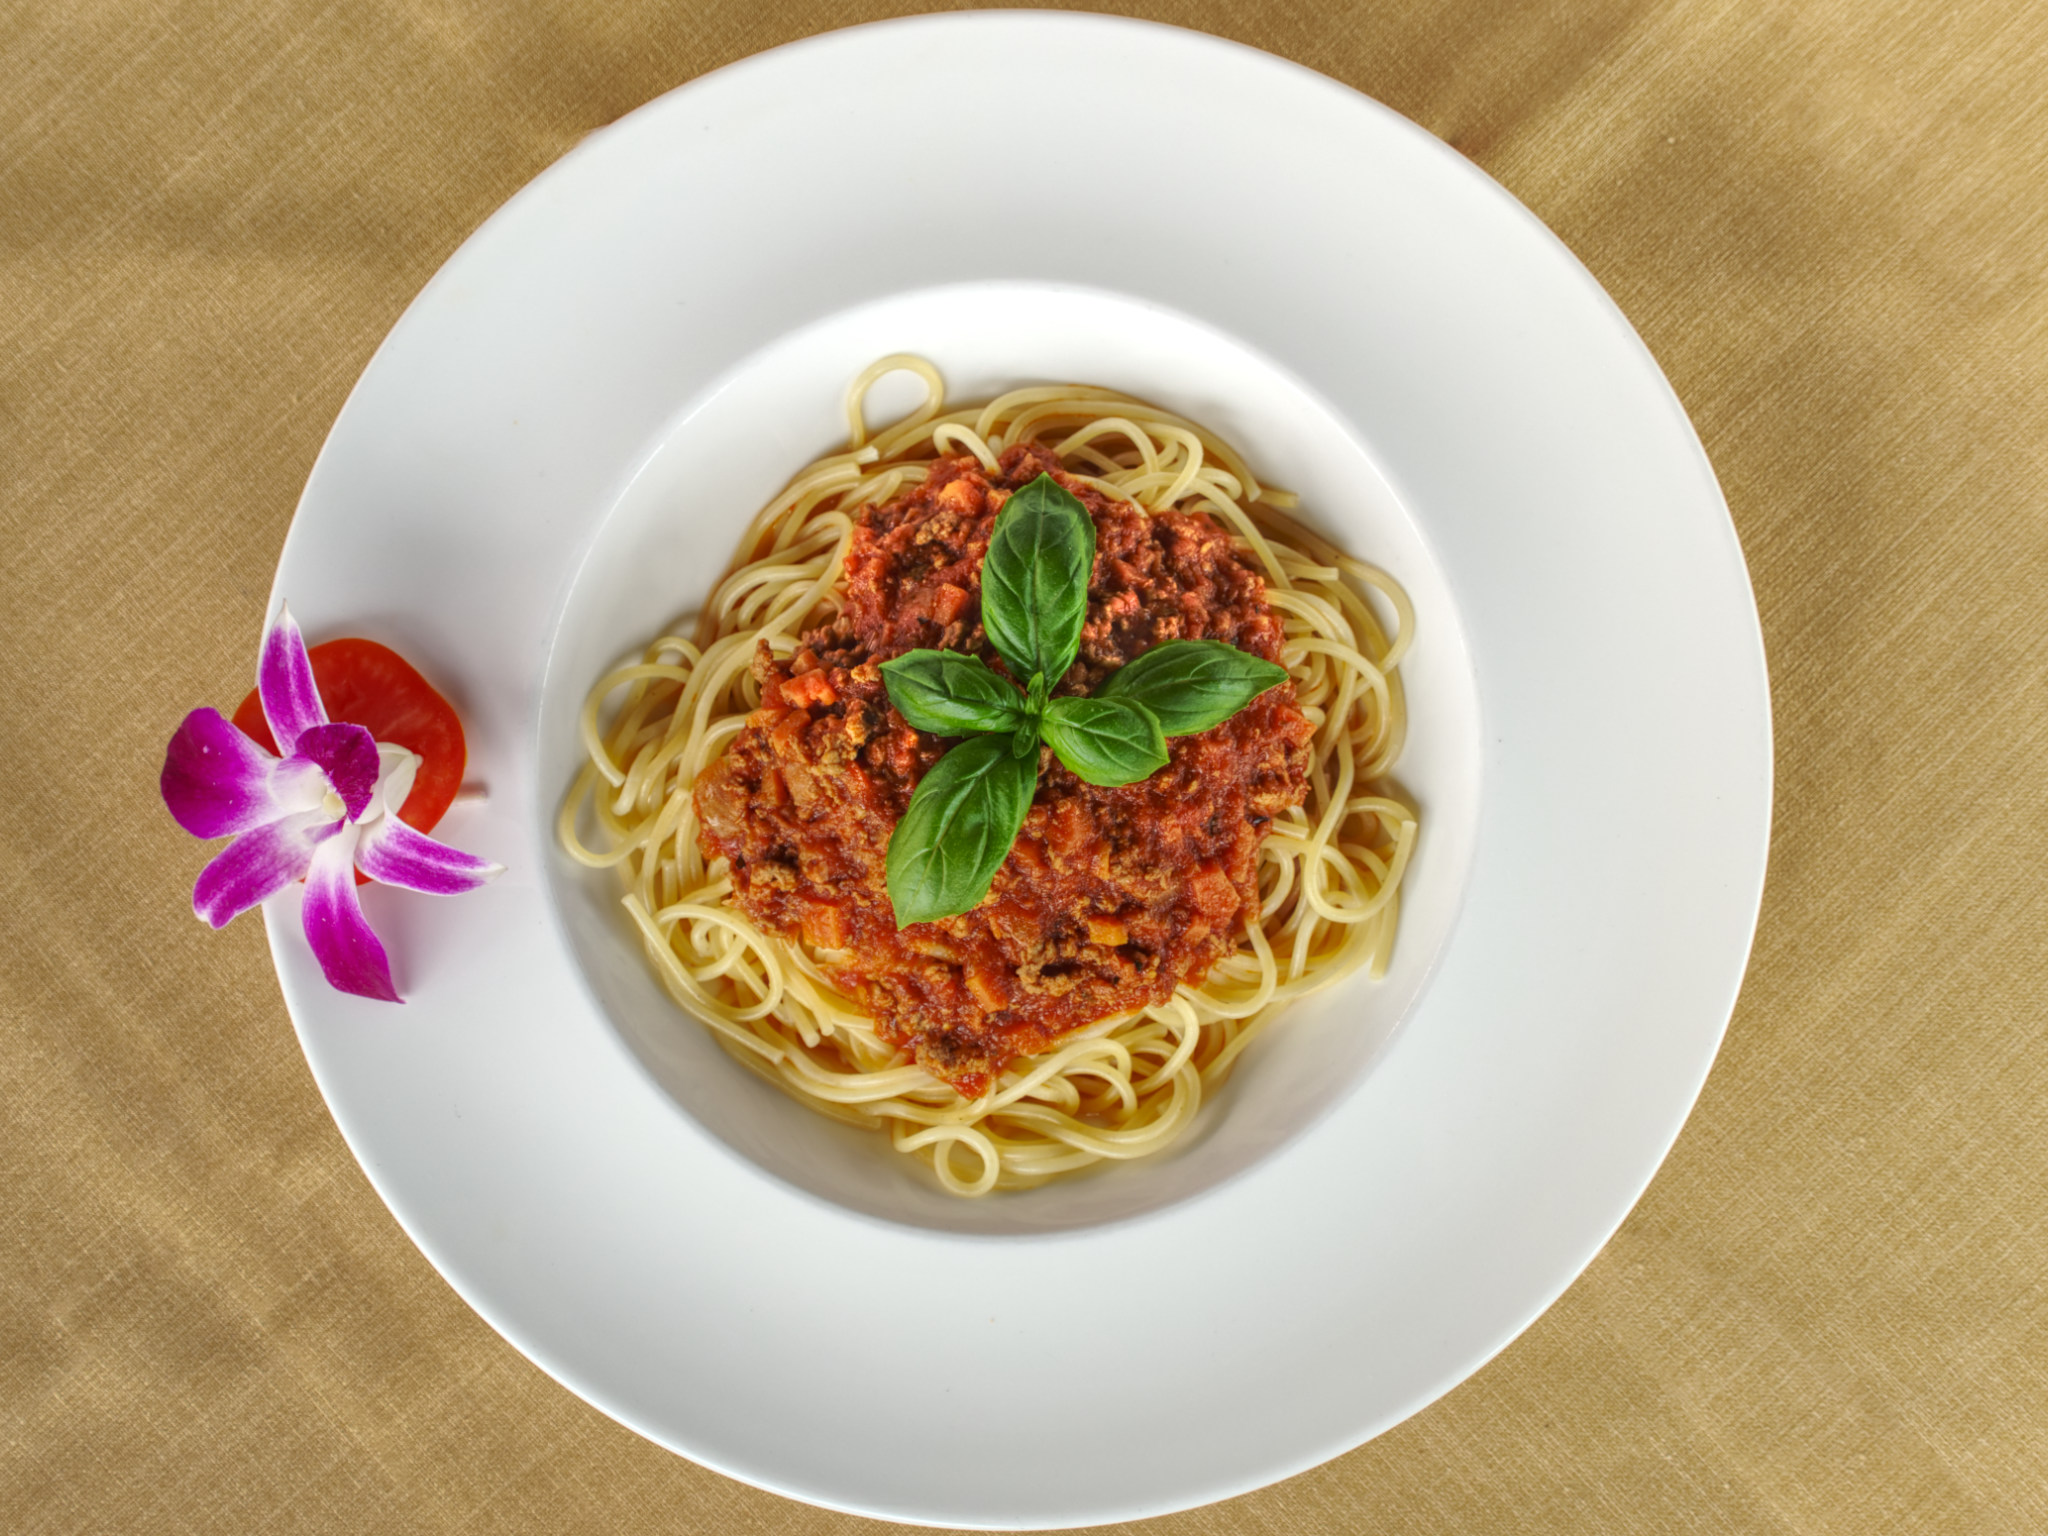 photograph birds eye view of plate of spaghetti bolognese